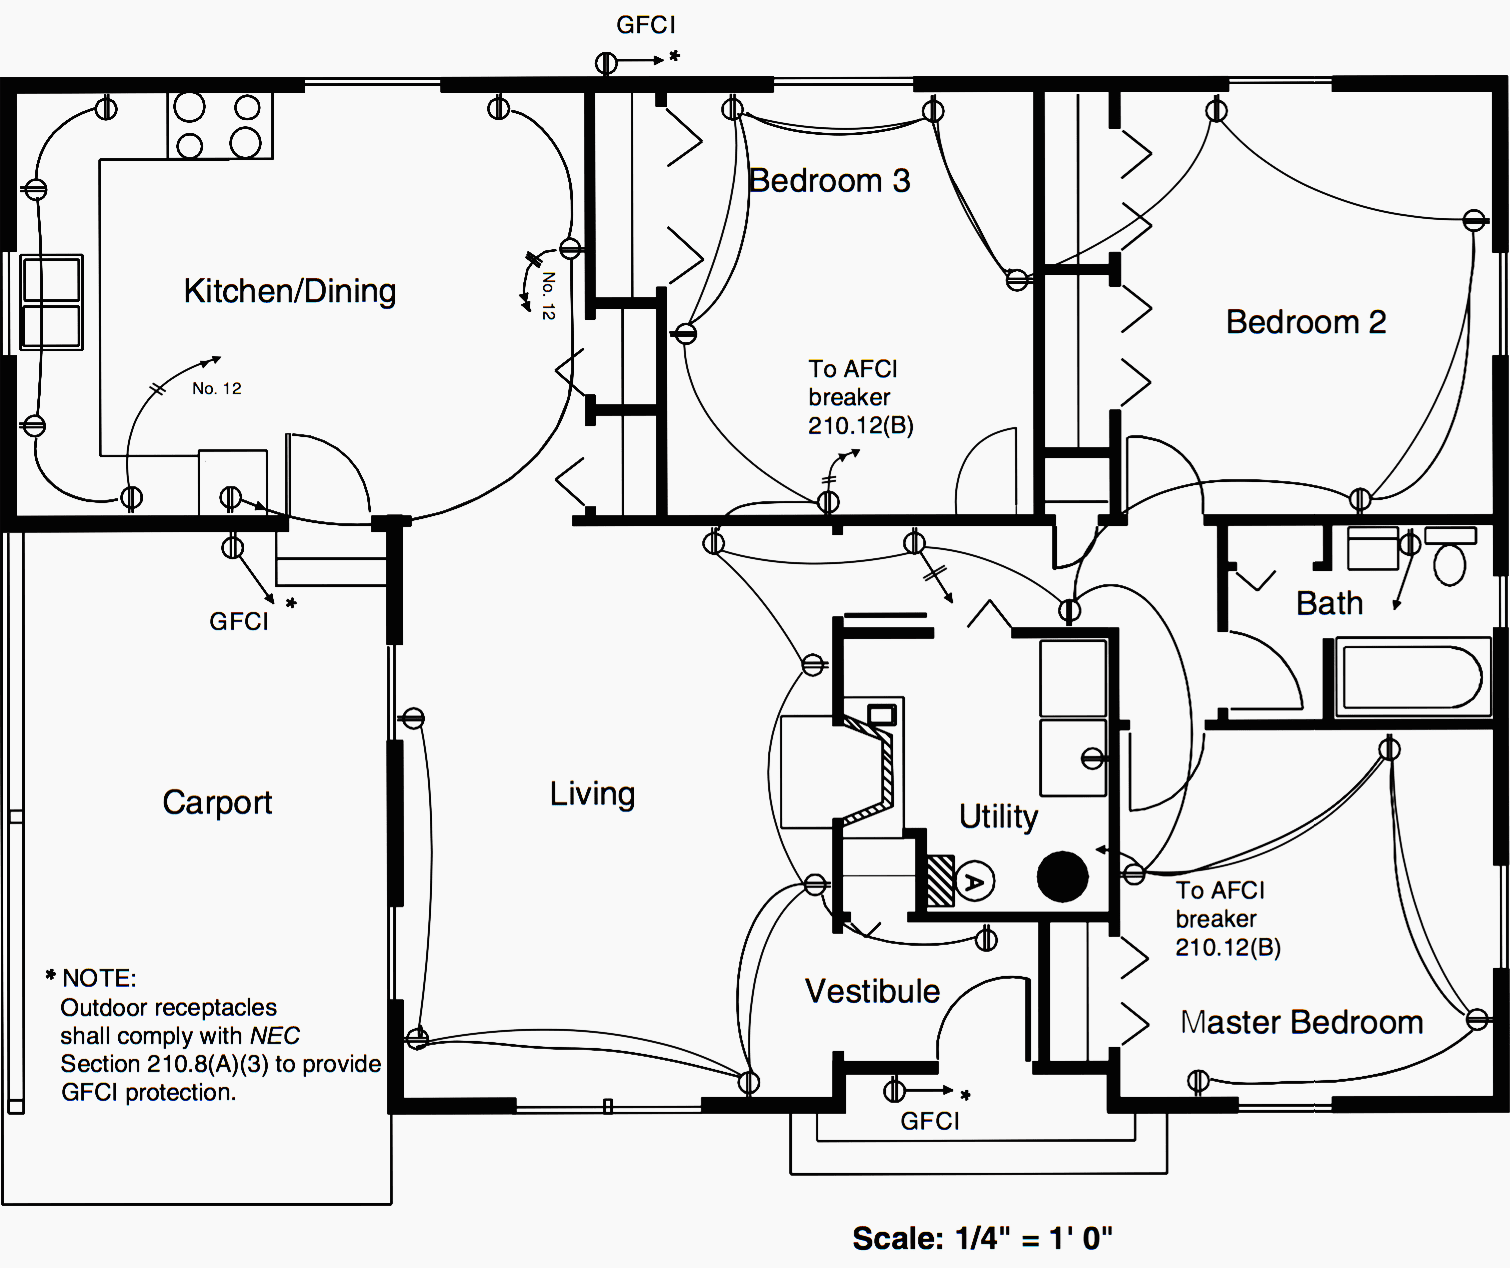 How good are you at reading electrical drawings? Take the